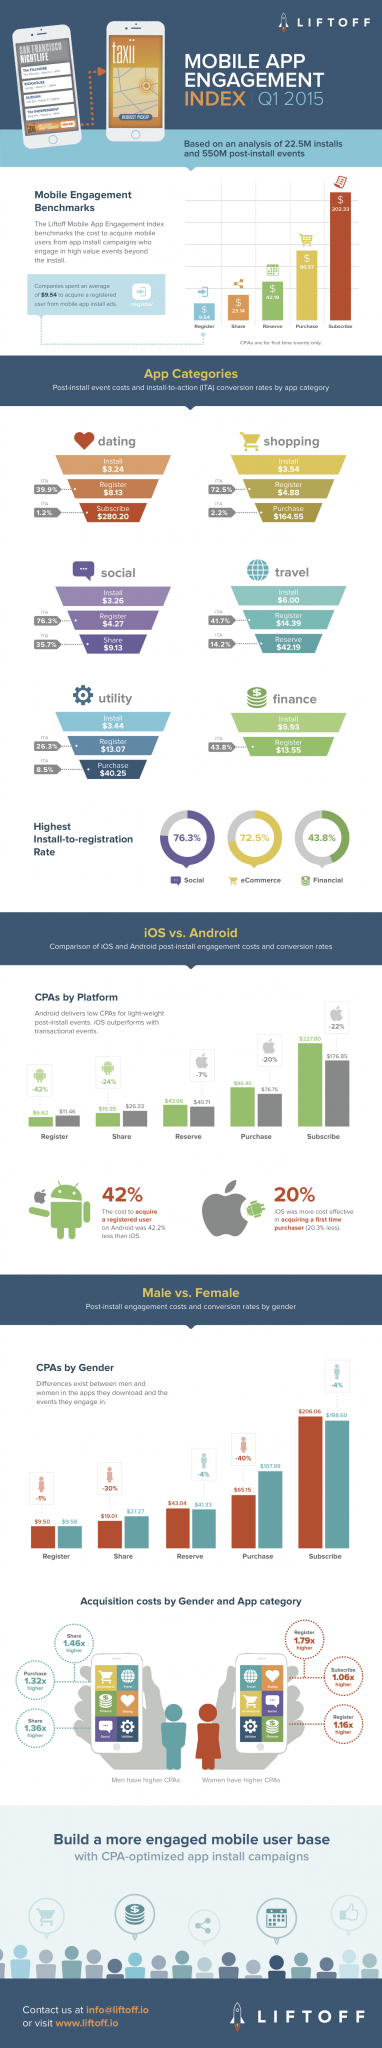 Infographic: Q1 Mobile App Engagement